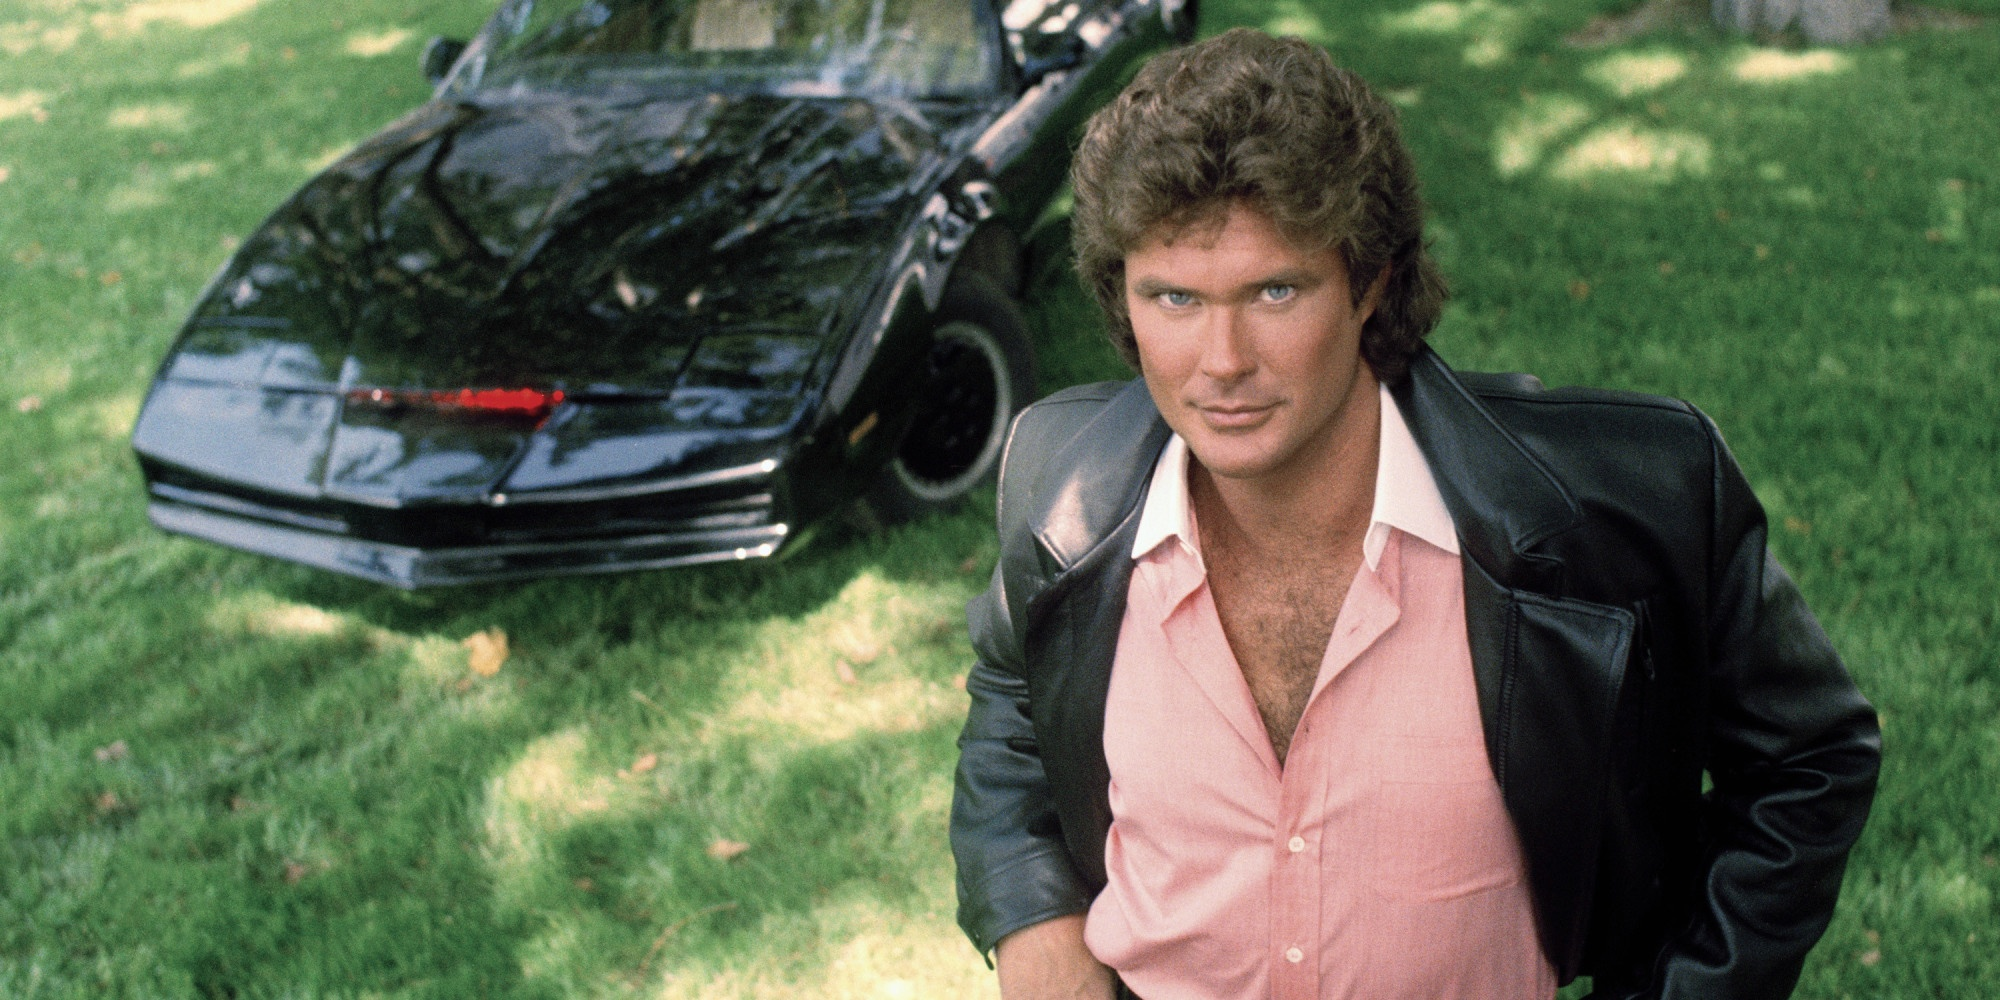 'Fast & Furious' Director Justin Lin to Helm 'Knight Rider' Reboot